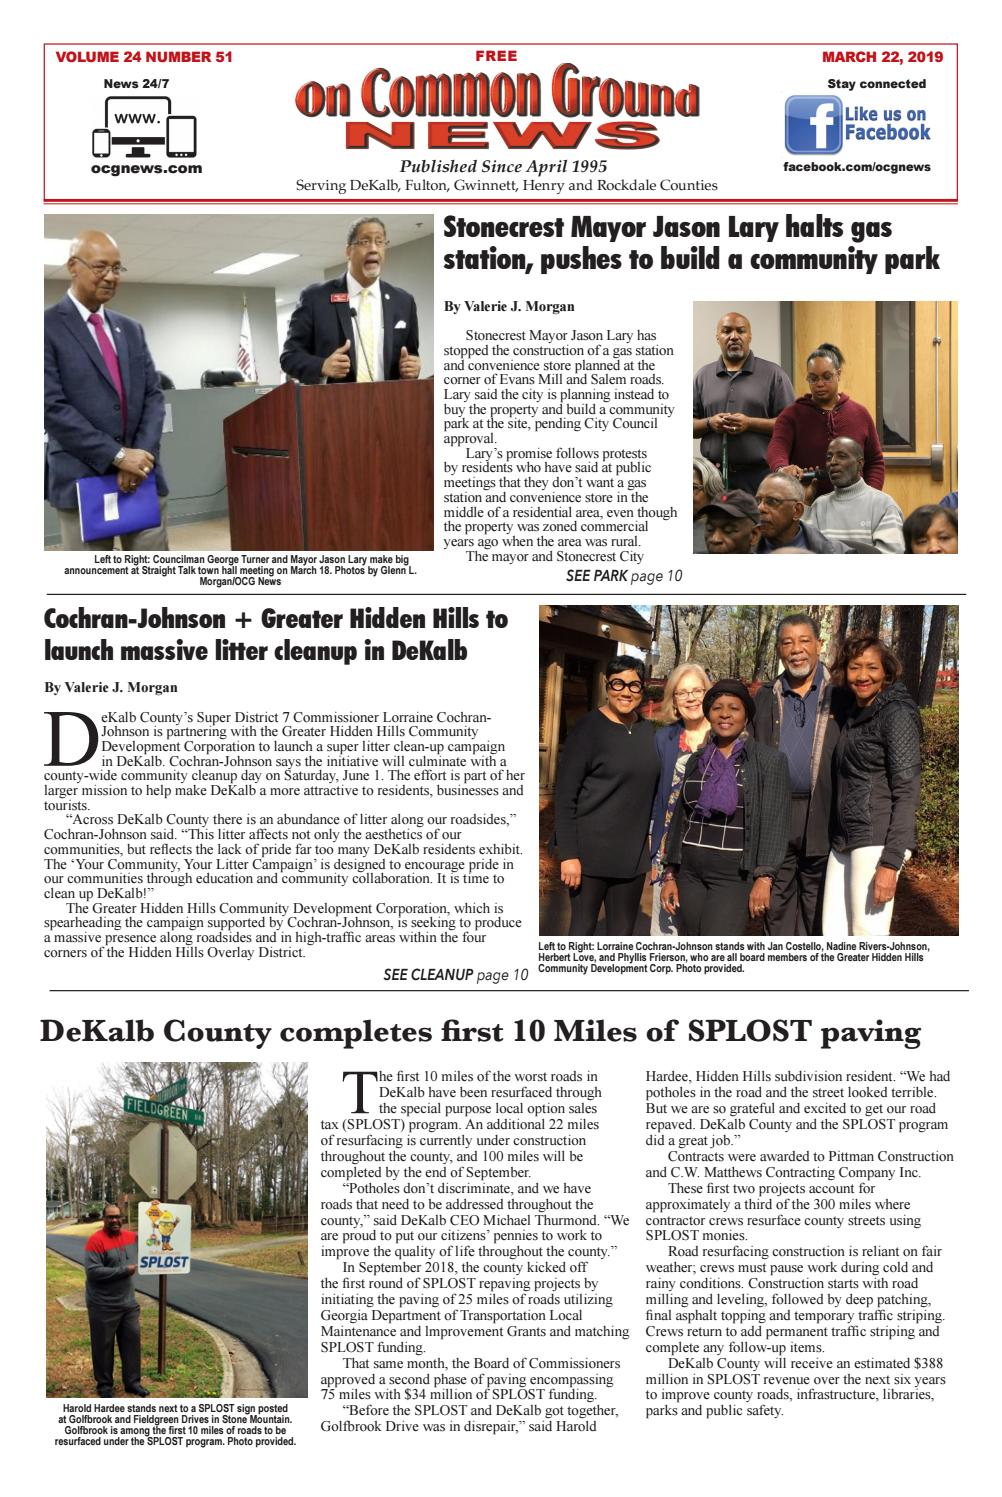 OCGN March 22, 2019 by On Common Ground News - issuu